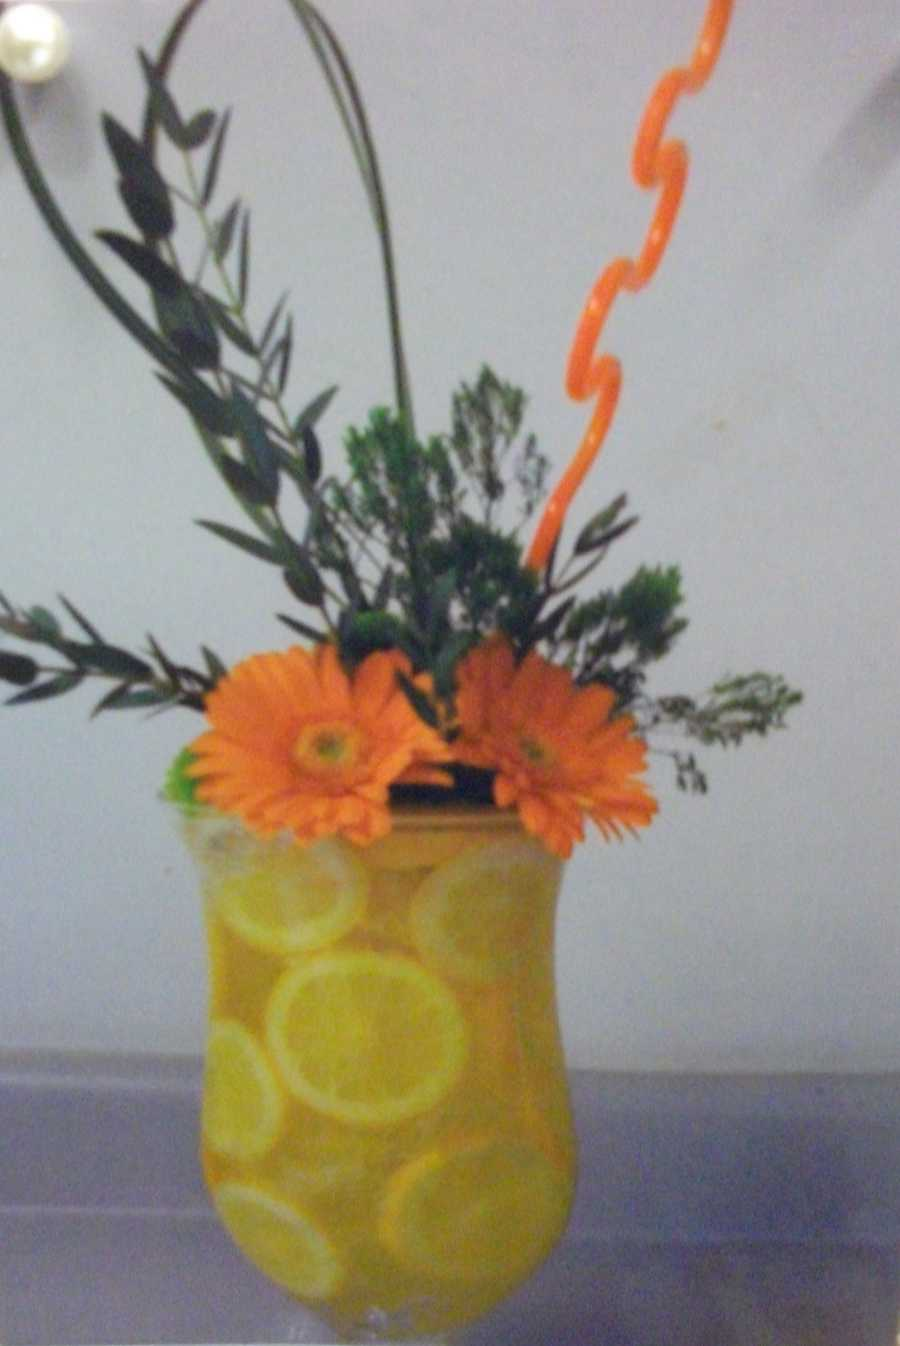 Unique ideas like this floating lemon vase can be found at The Carolina Weddings Shows. (Beverly's of Midway Flowers and Gifts)